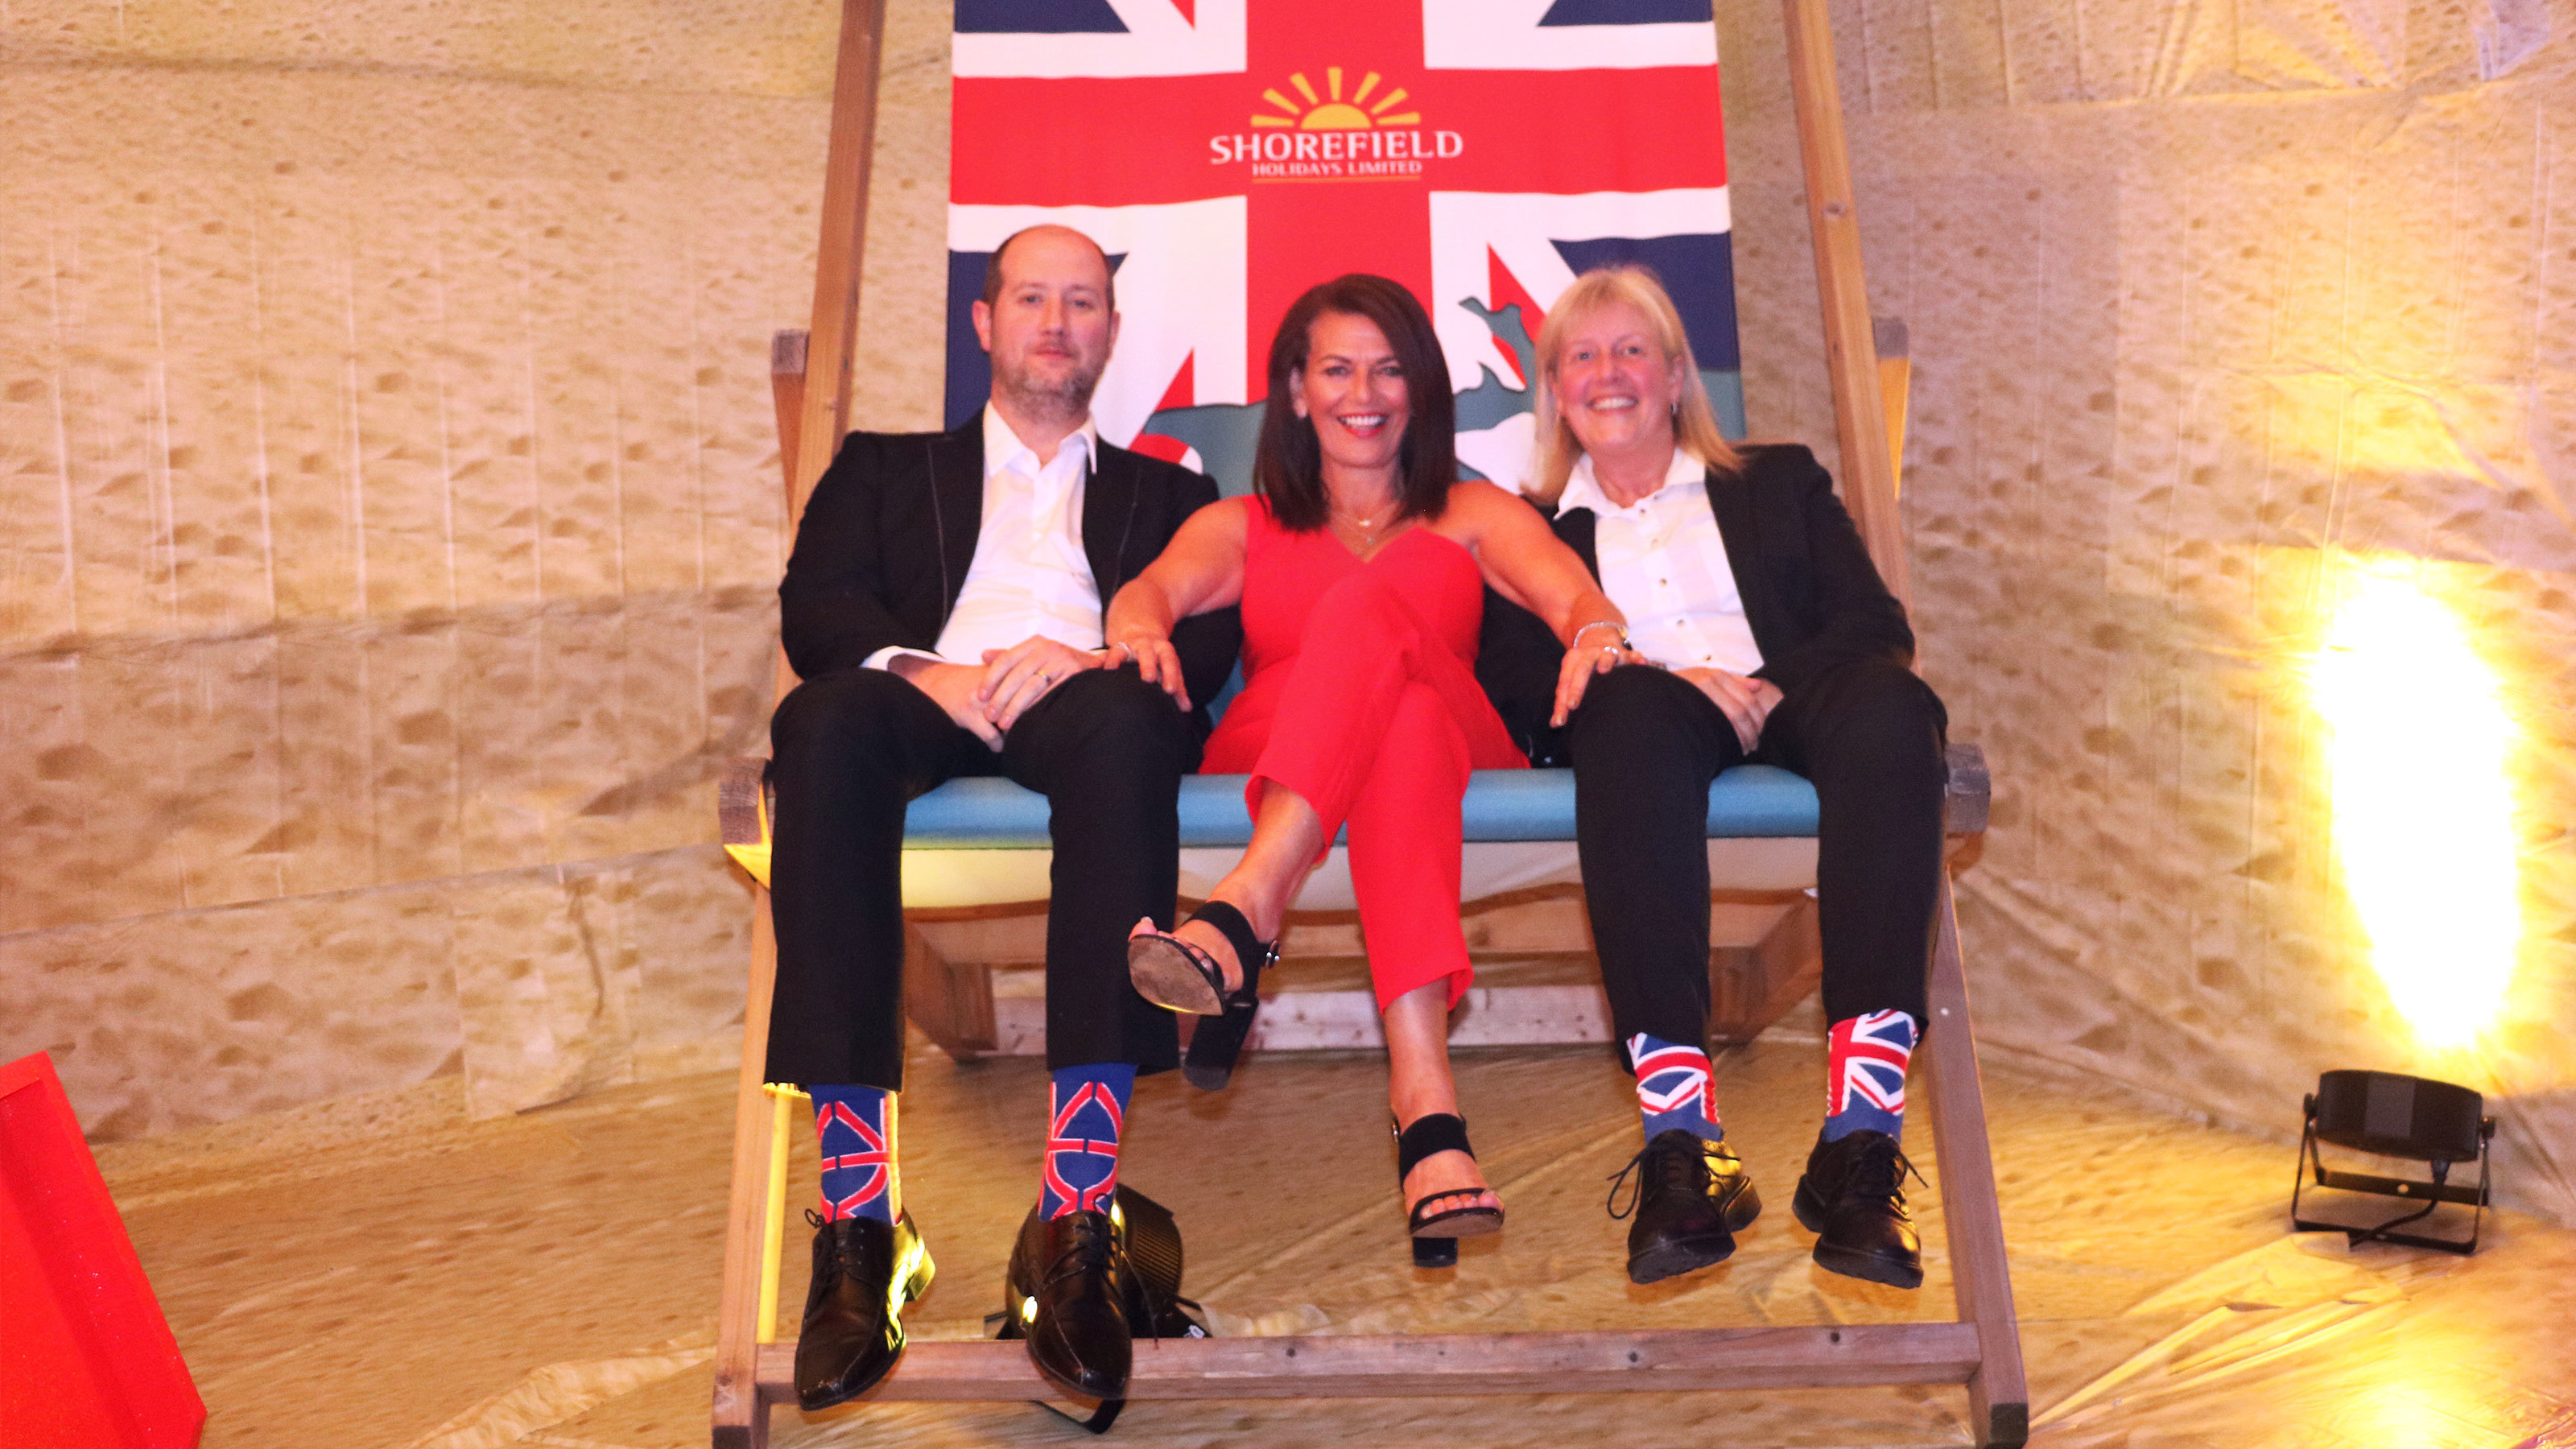 The-proud-organisers-of-the-Staff-Awards-take-a-seat-in-the-giant-deckchair